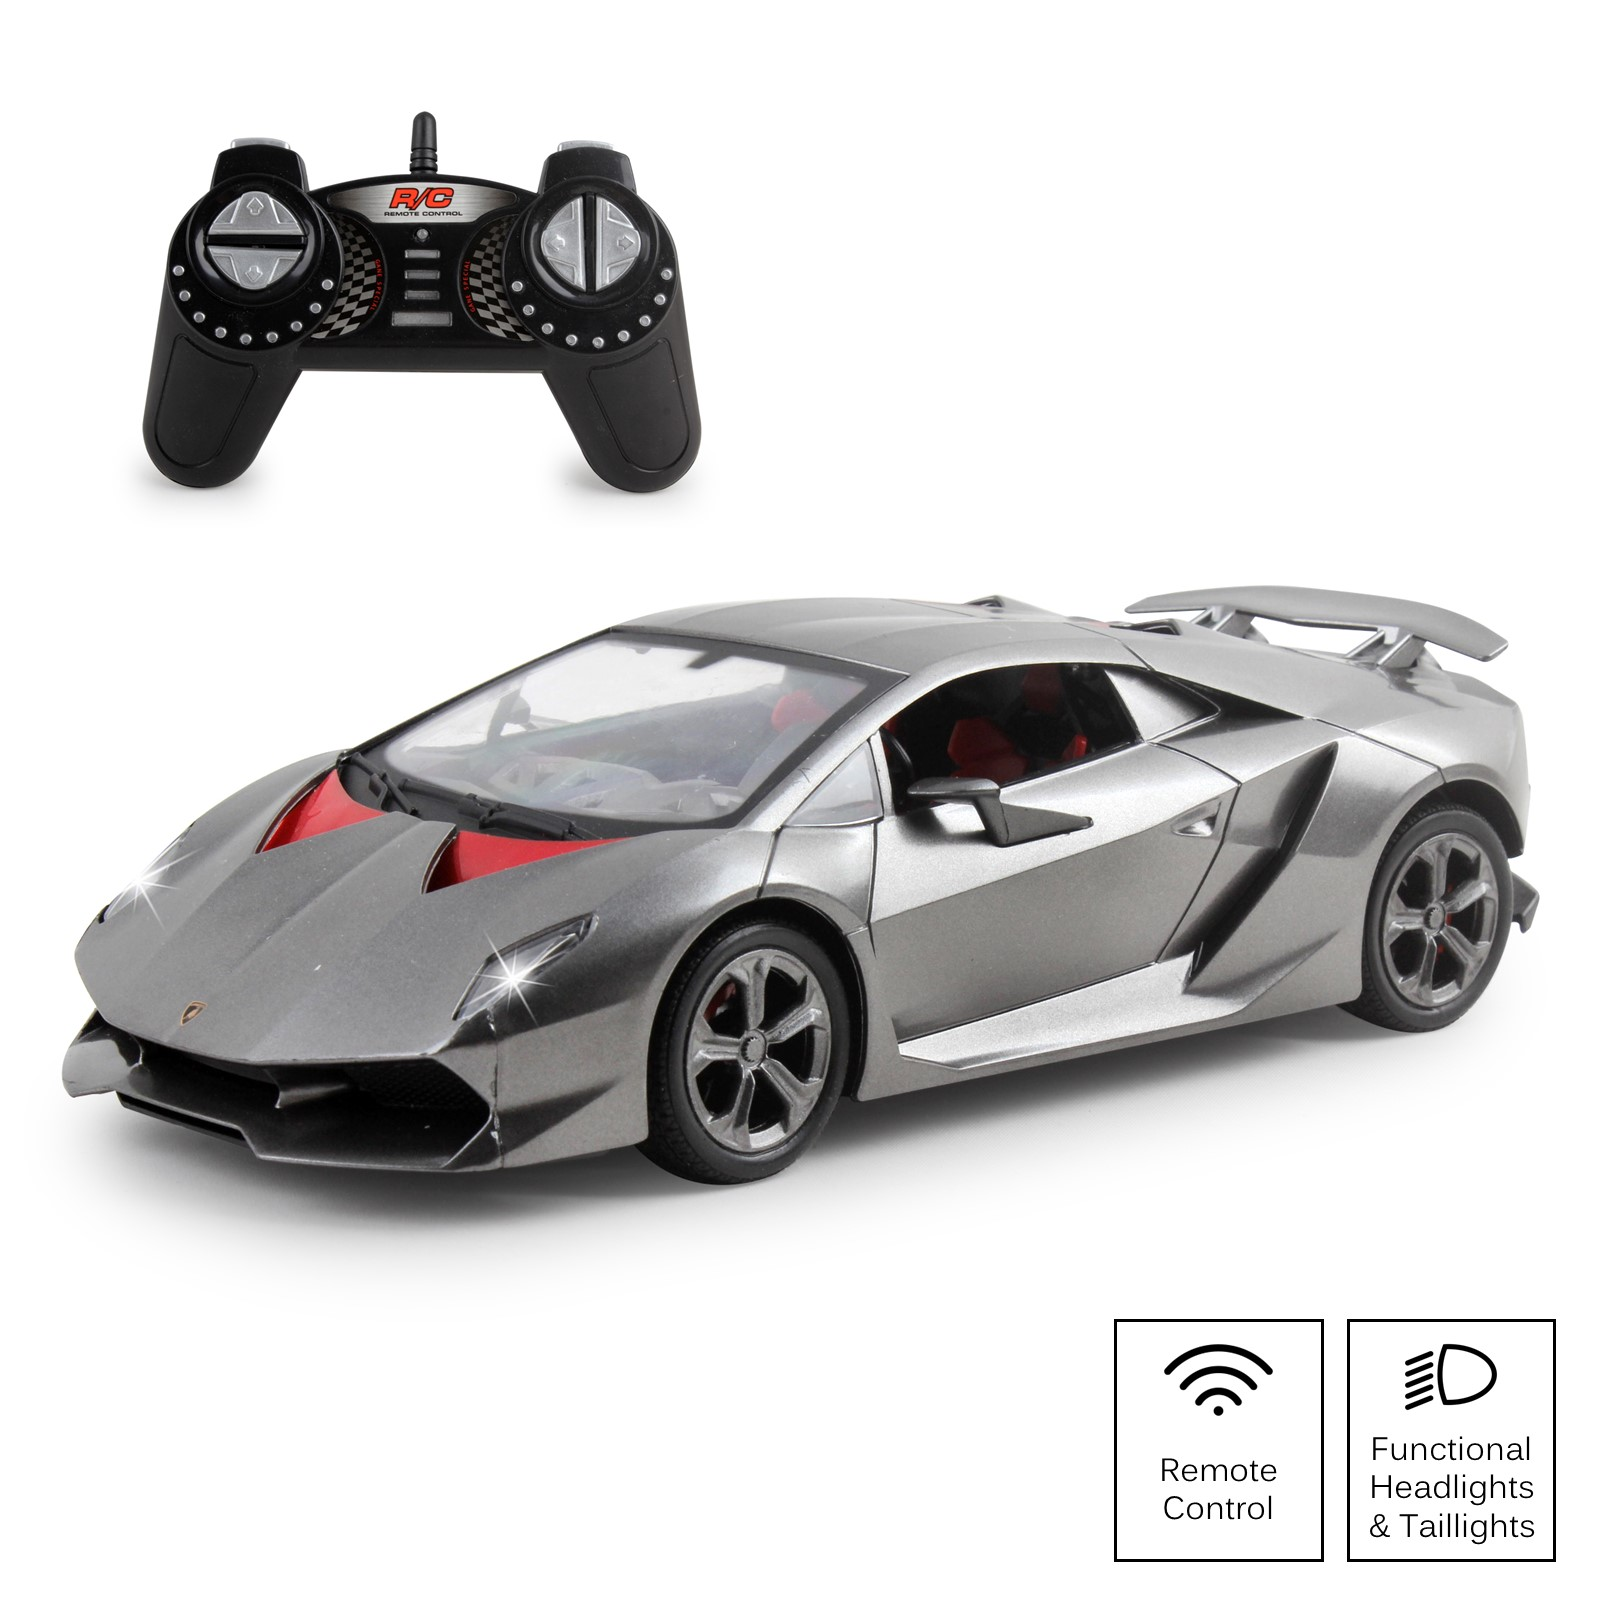 Vokodo RC Super Car 1:18 Scale Remote Control Full Function Easy to Operate Kids Toy Exotic Sports Model with Working LED Headlights Luxury Race Vehicle for Children Boys and Girls